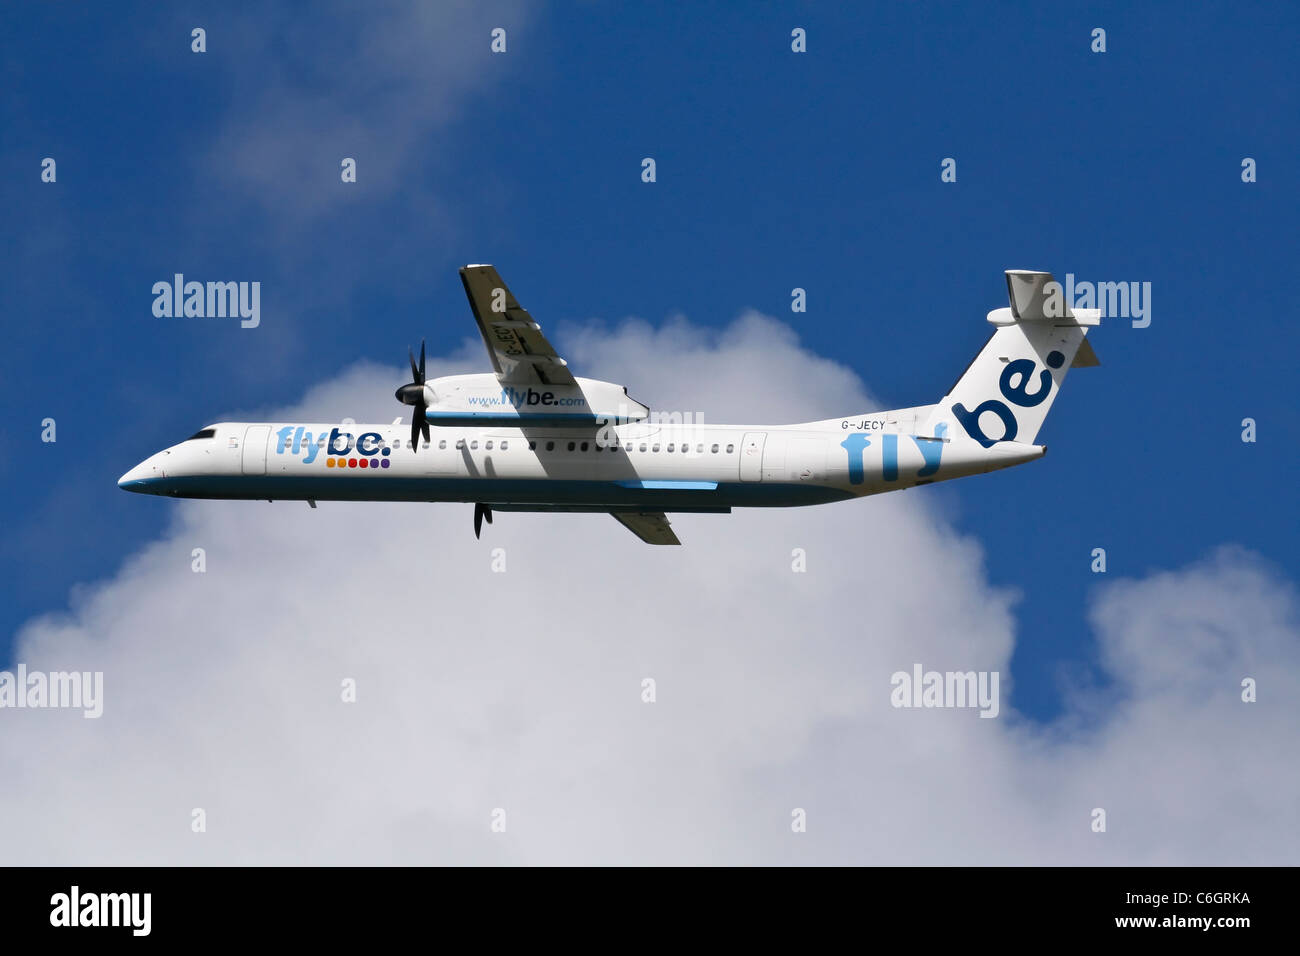 De Havilland Canada DHC-8Q-402 Dash 8 aircraft of Flybe airline just taking off - Stock Image